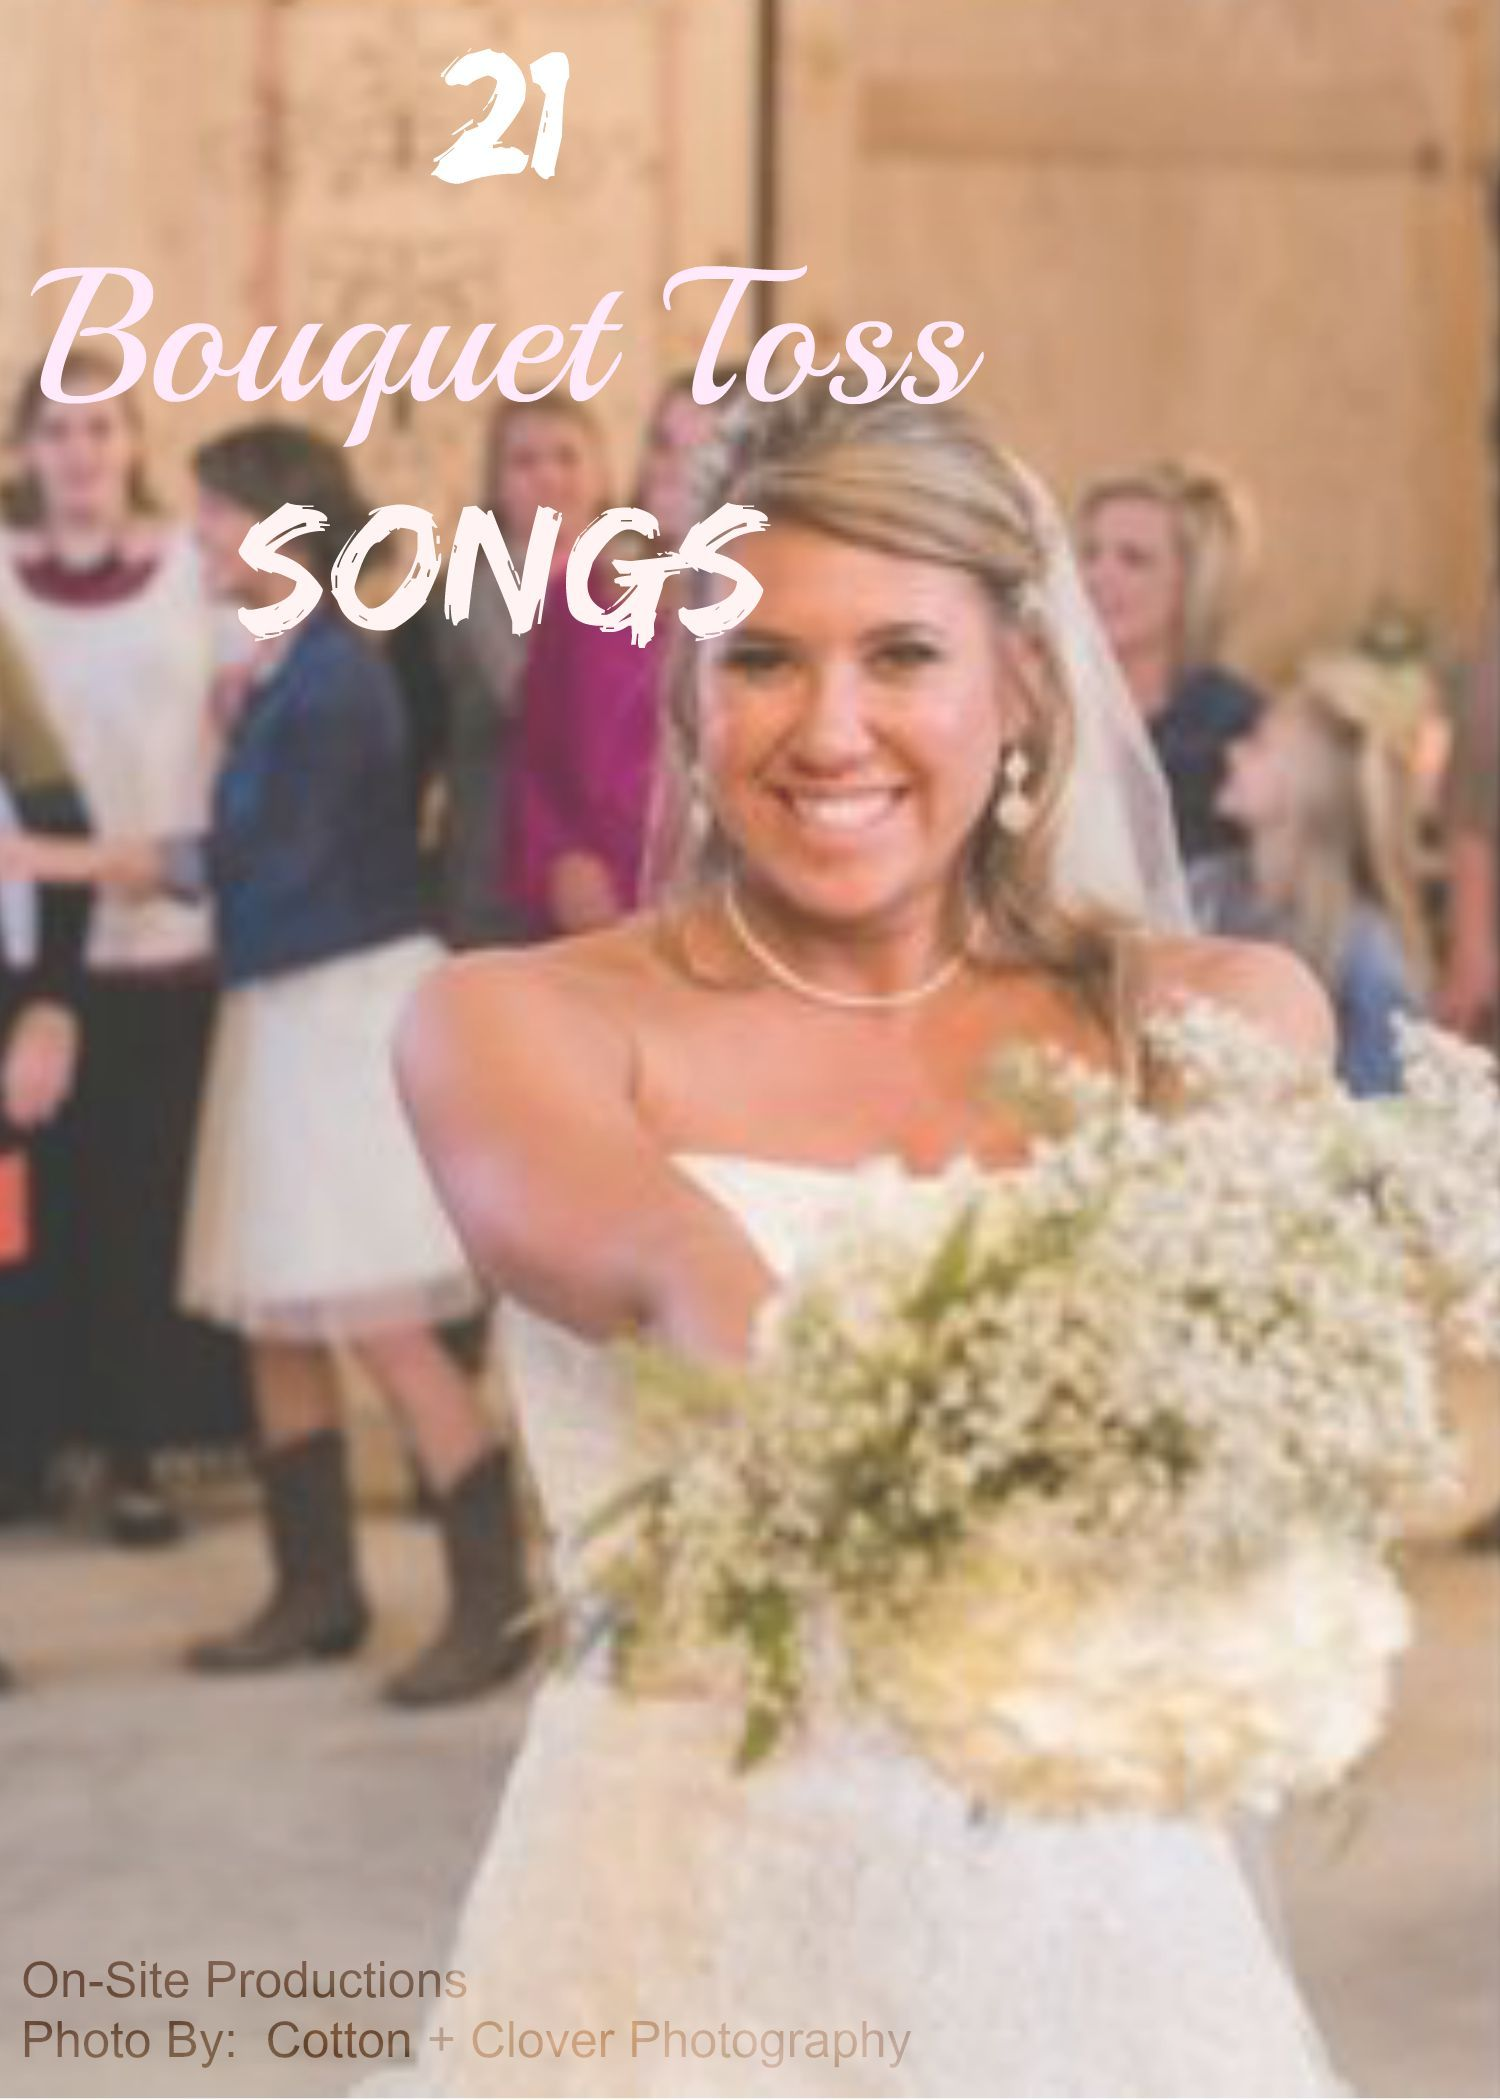 The bouquet toss is such a fun part of the wedding ...